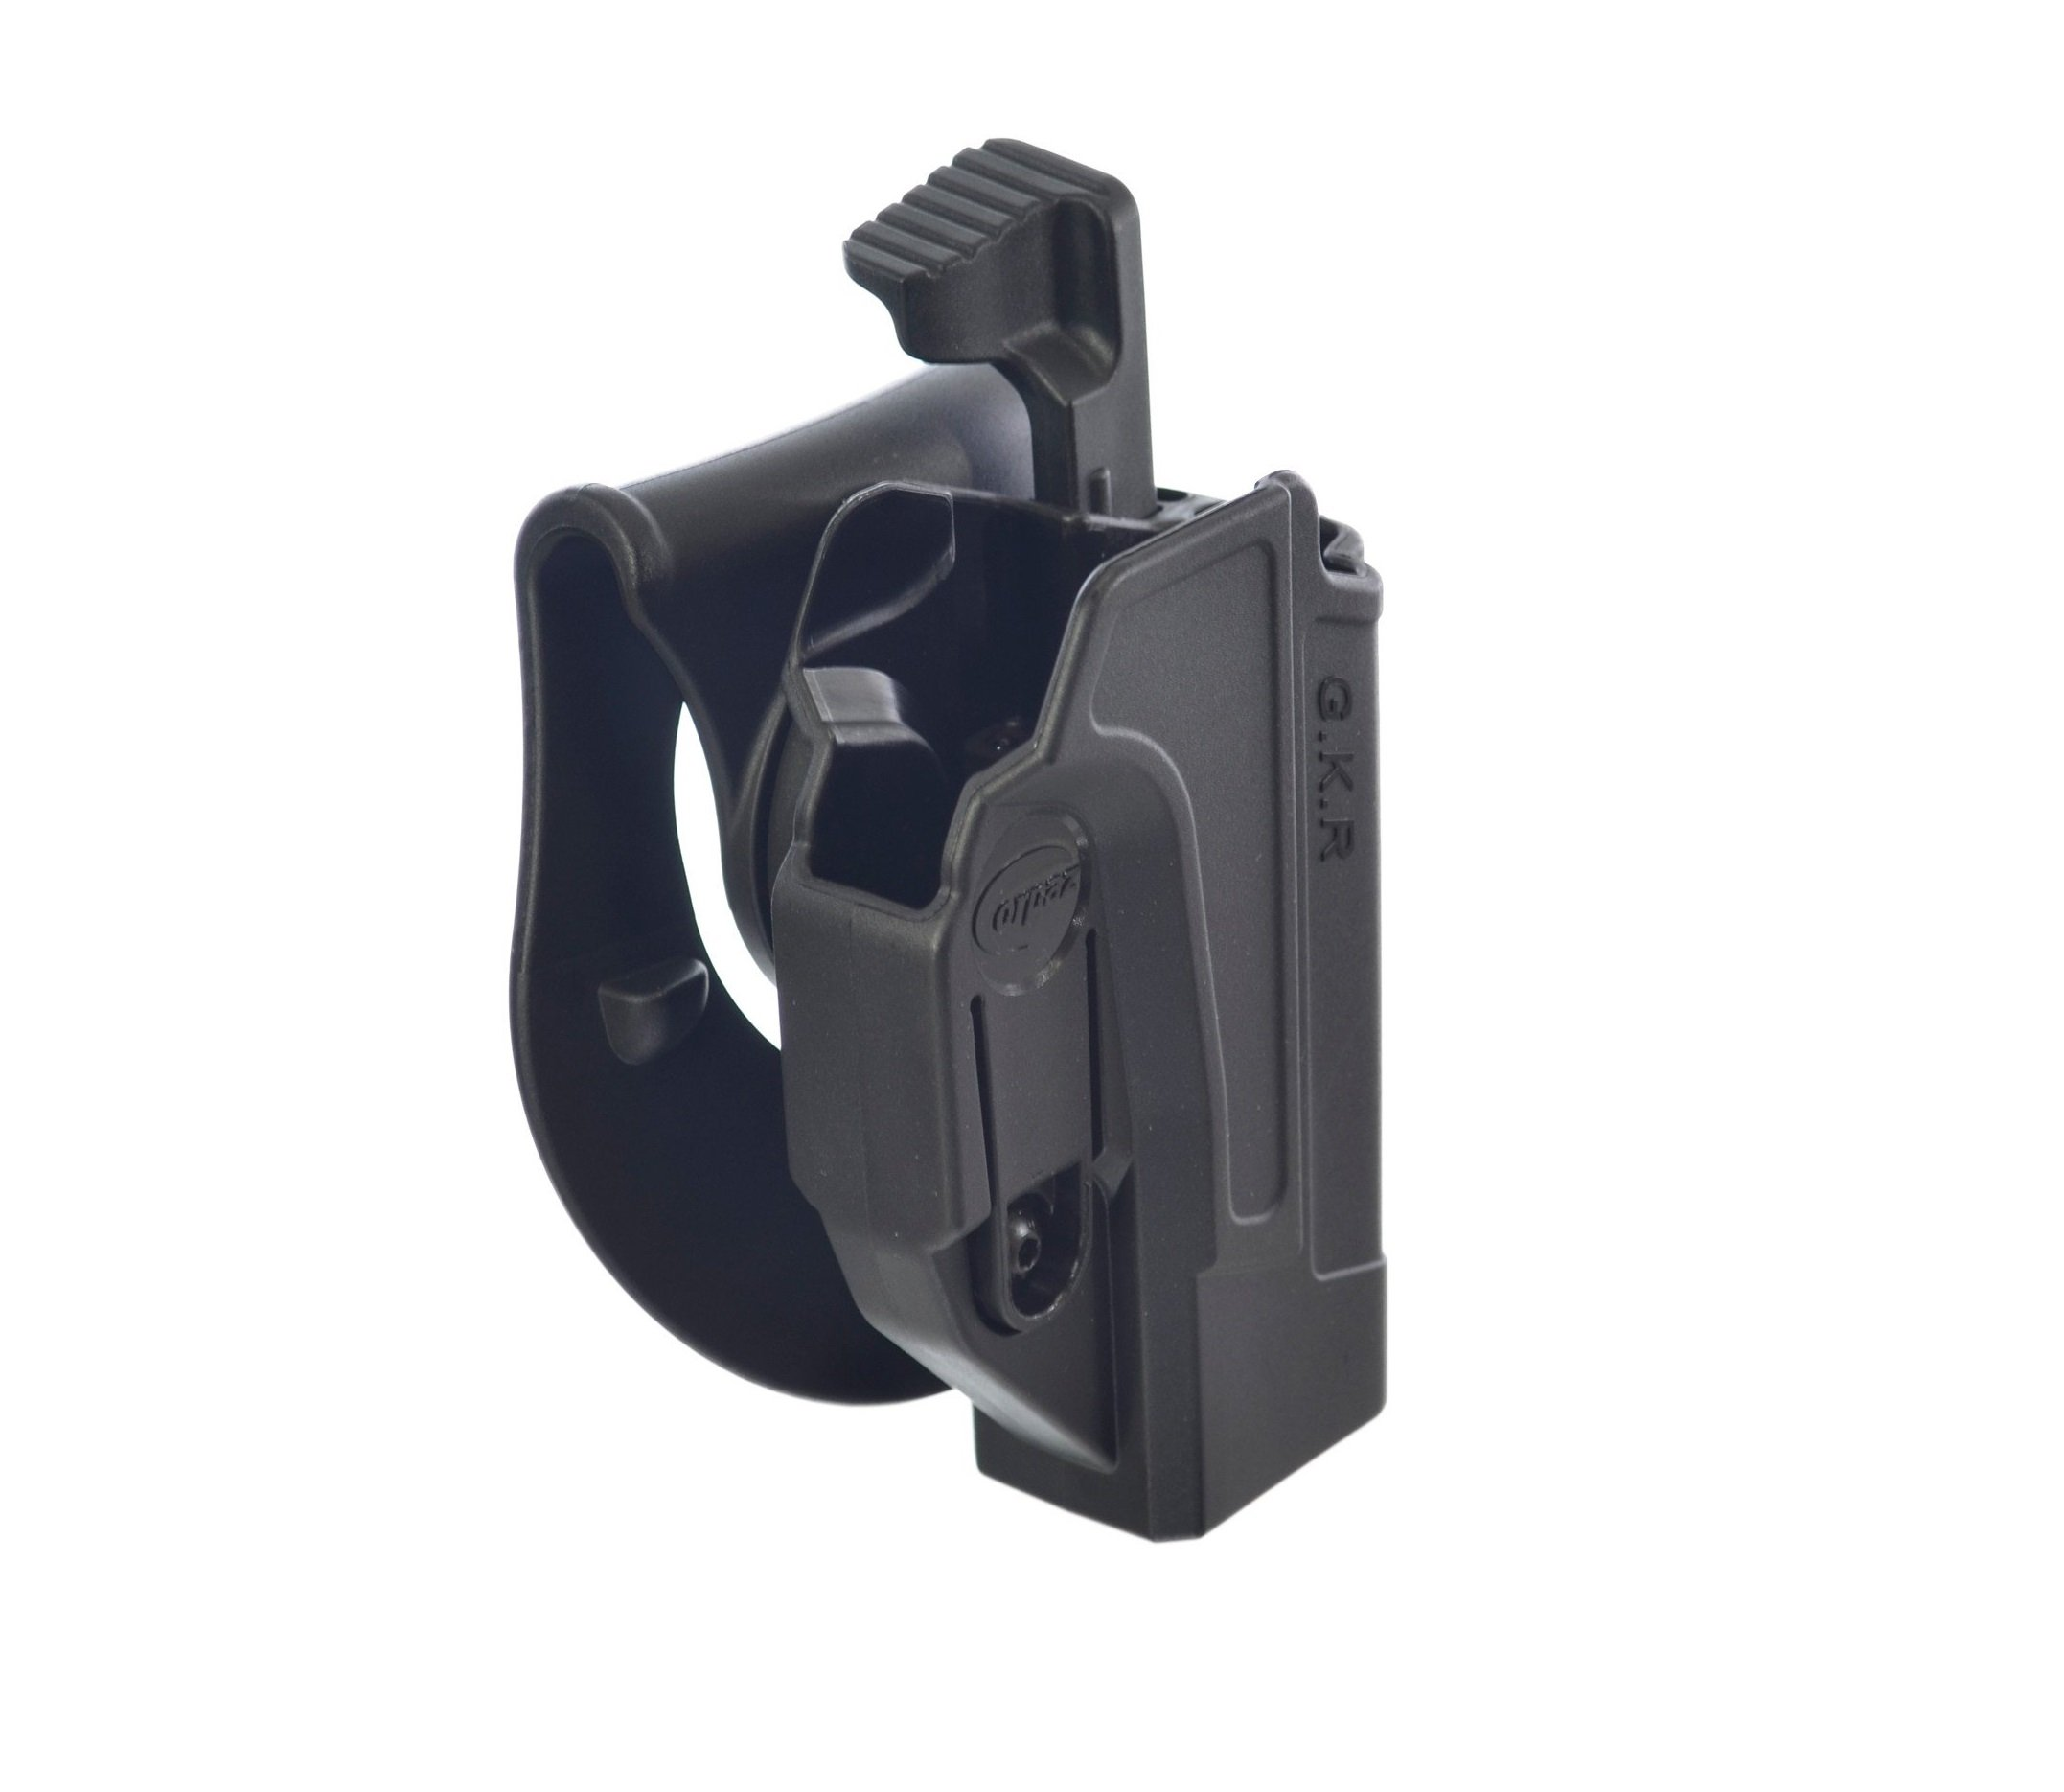 Orpaz S&W M&P Professional Thumb Release Holster Rotation Paddle&Belt With Tension Adjustment, Made in Israel